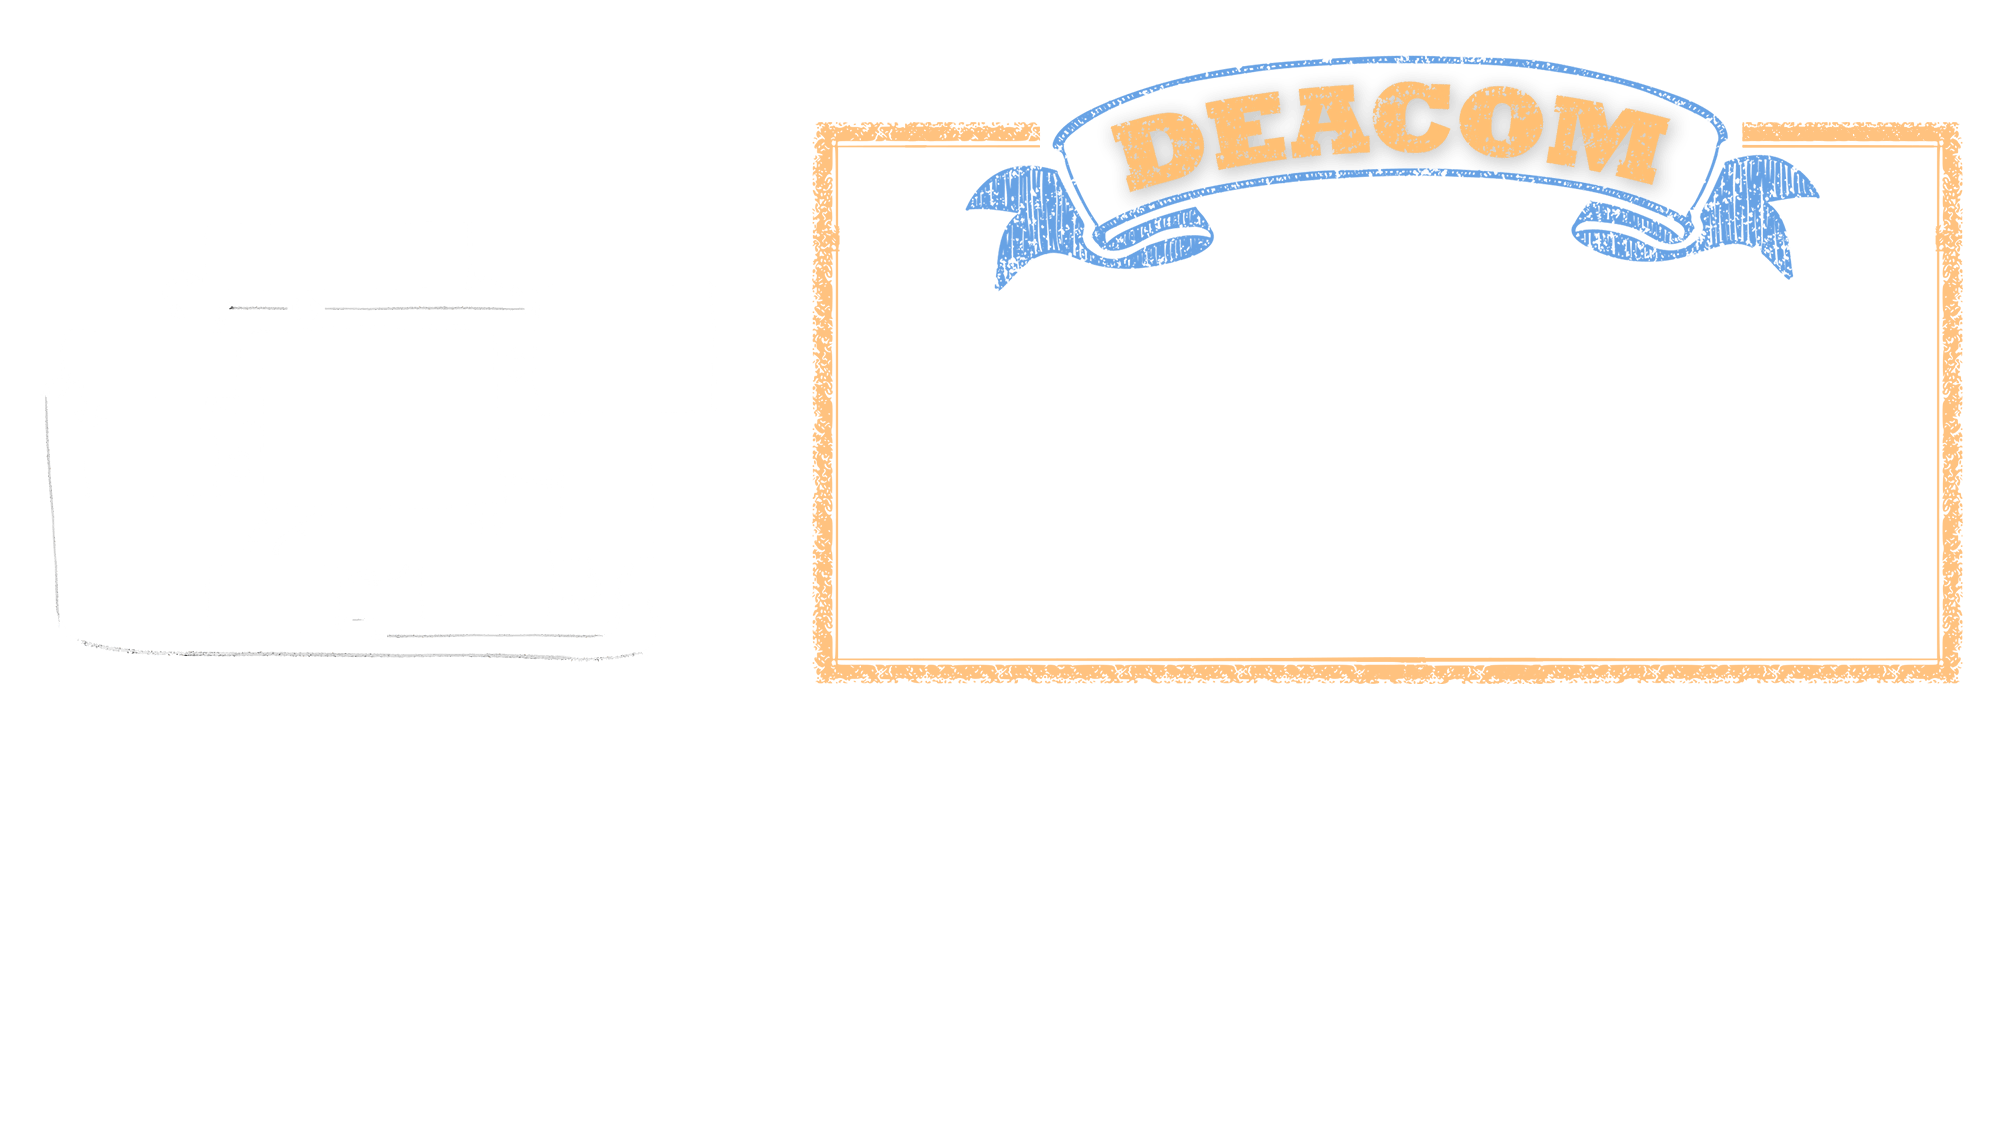 DEACOM ERP Functional Foundation vs Traditional ERP